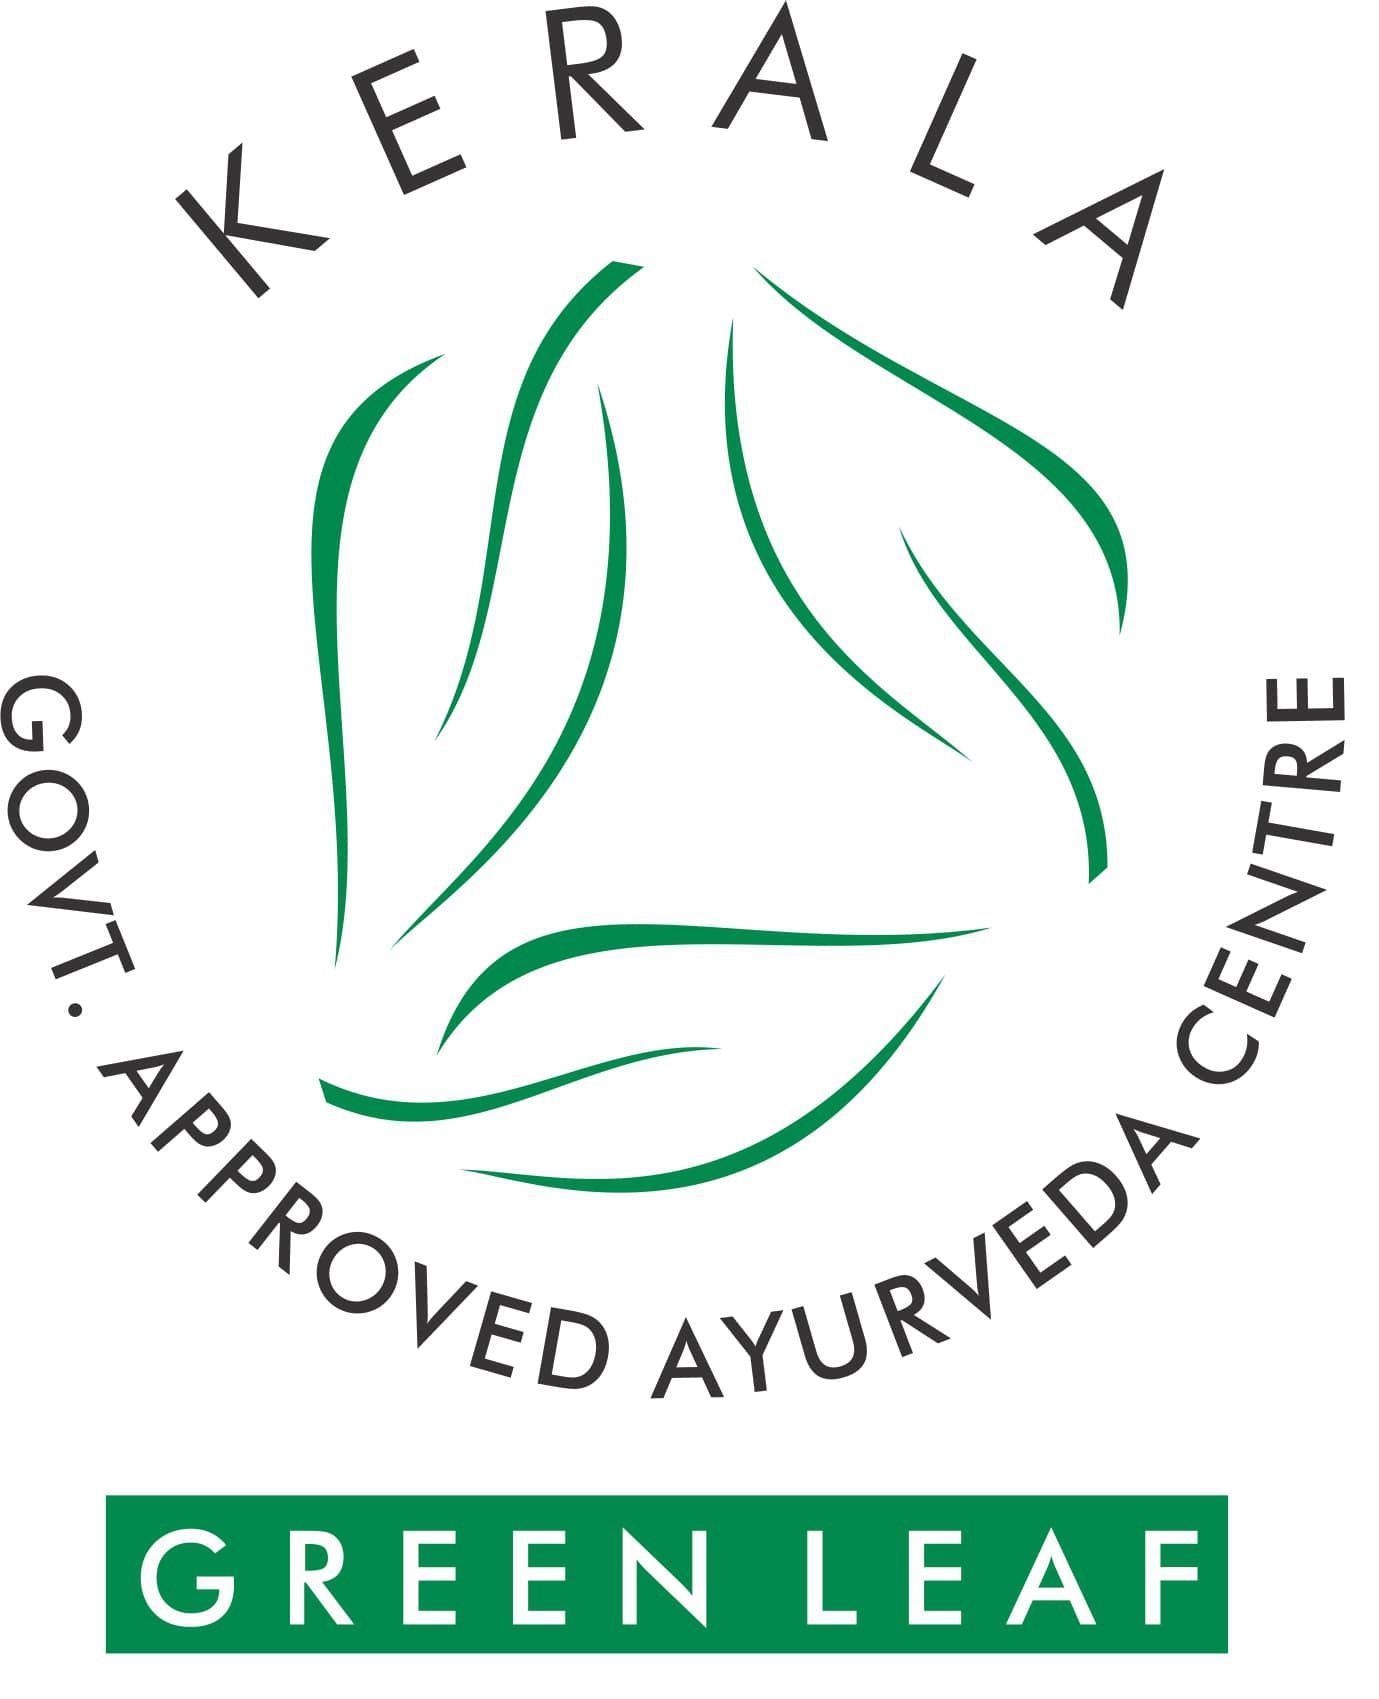 Accreditation Green Leaf - Govt. of Kerala